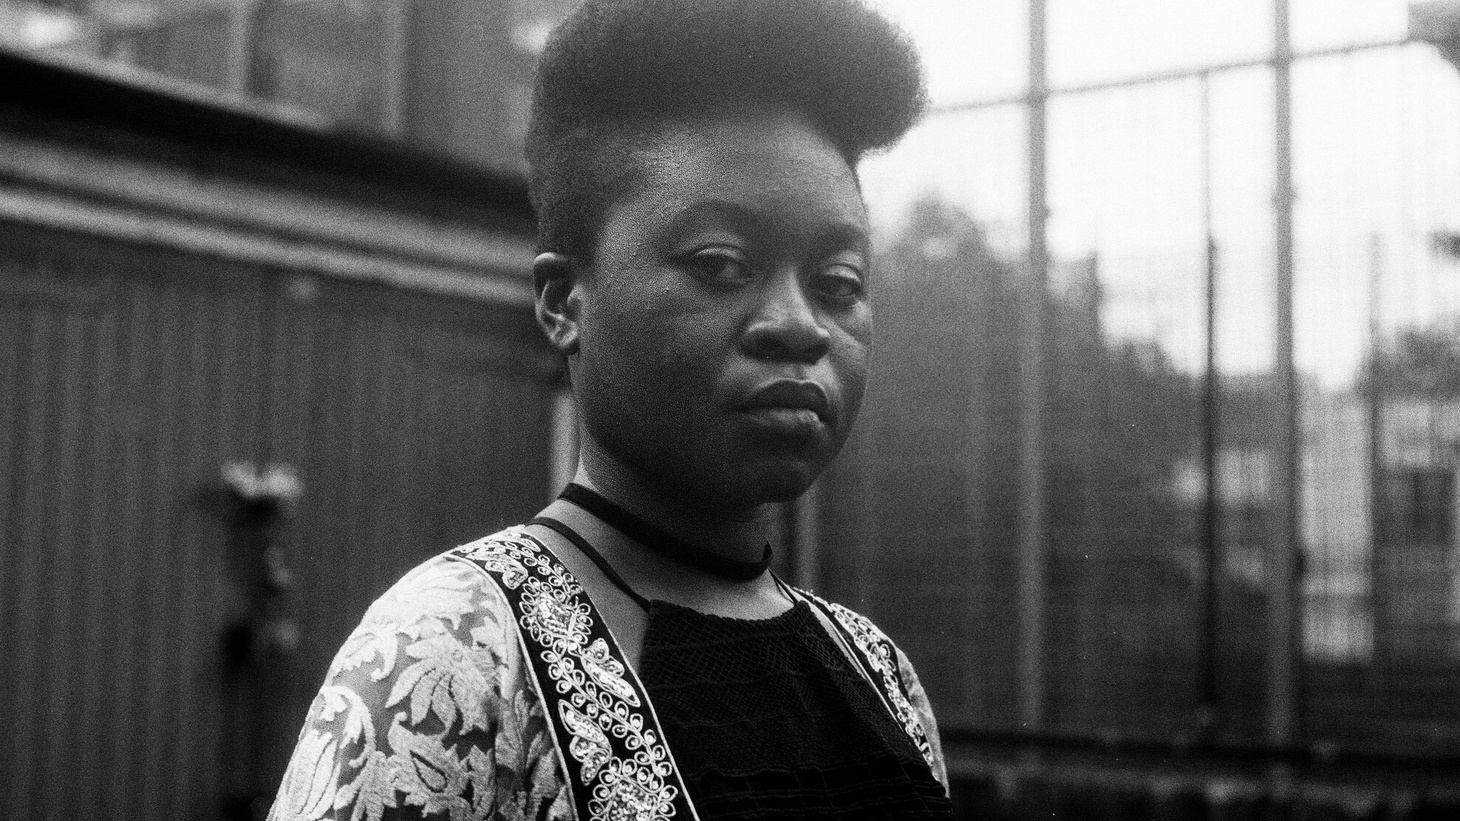 Sampa The Great's deeply personal recording is fully influenced by her background. She was born in Zambia, raised in Botswana, and just four years ago relocated to Australia. It was there that she honed her idea of what she wanted to create.